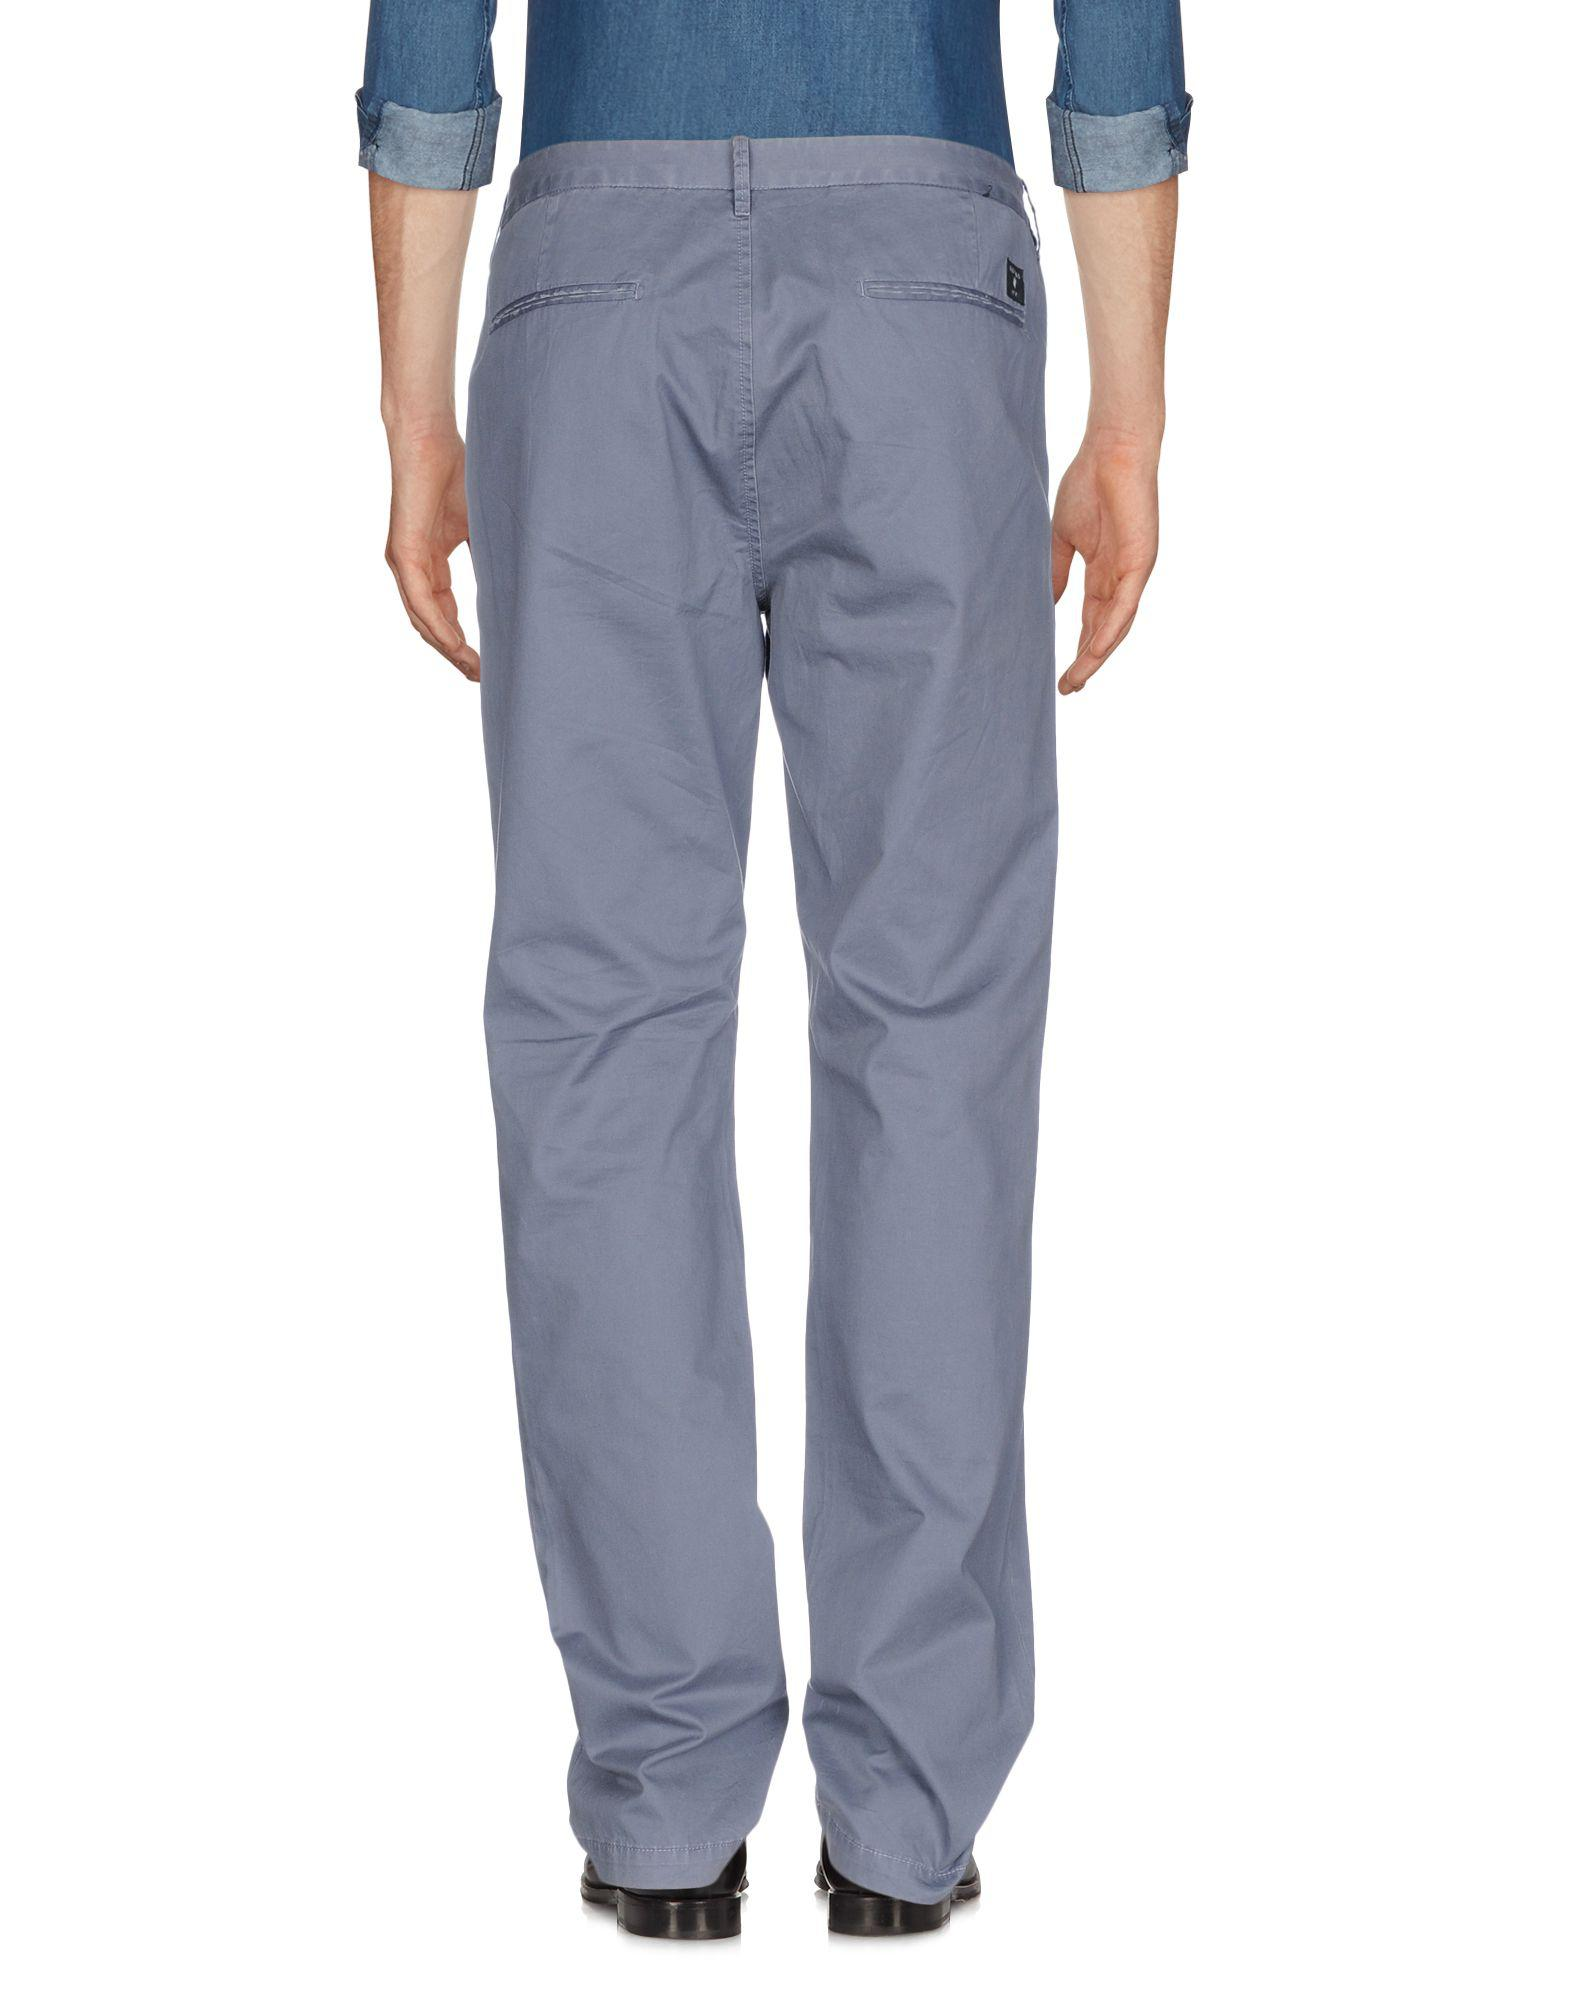 Guess Cotton Casual Pants in Grey (Grey) for Men